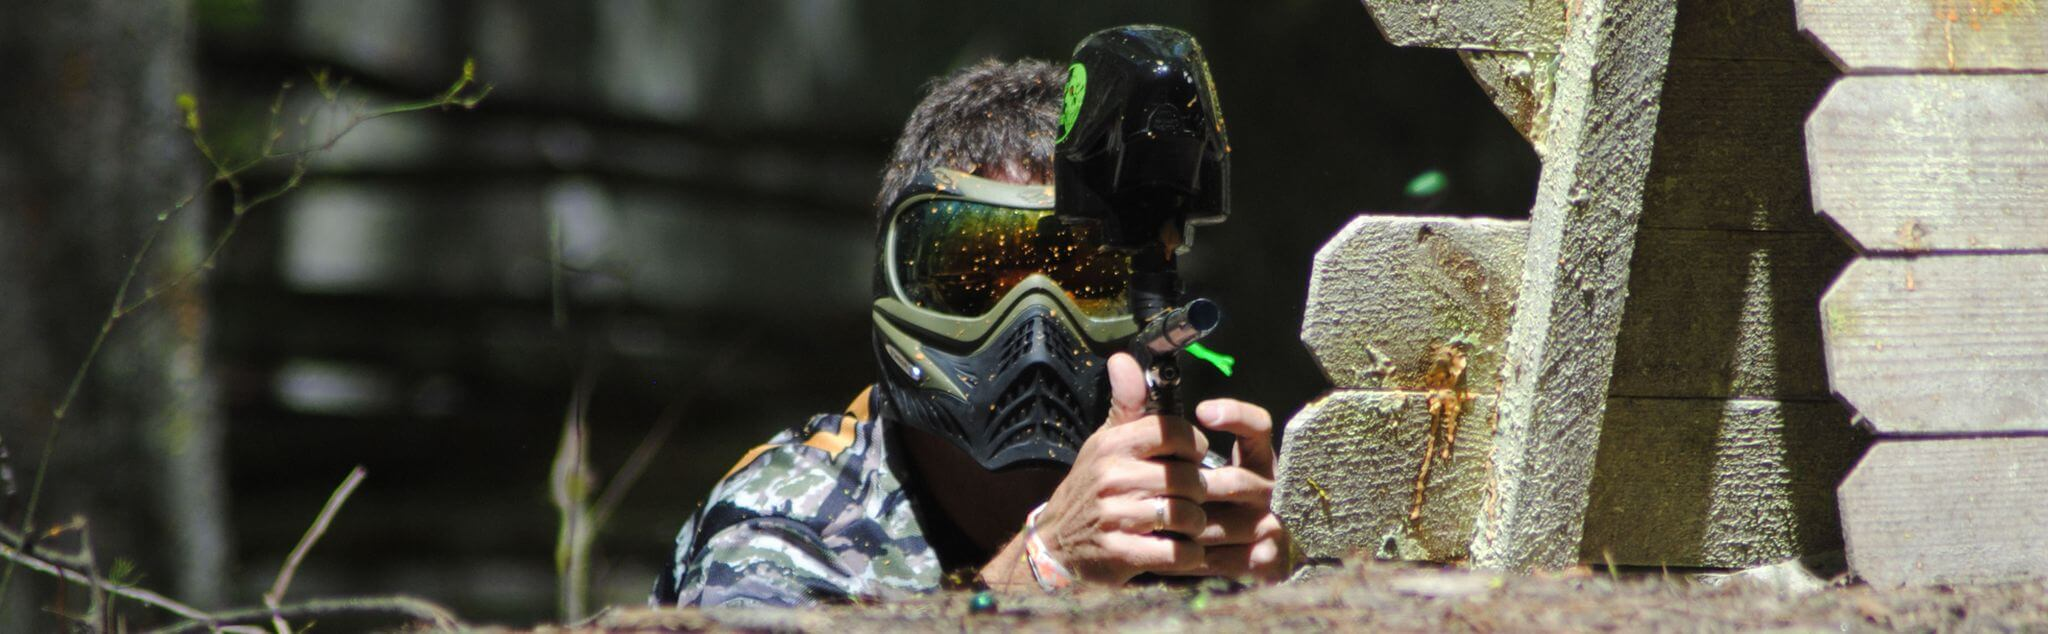 Paintball a Castello Molina di Fiemme